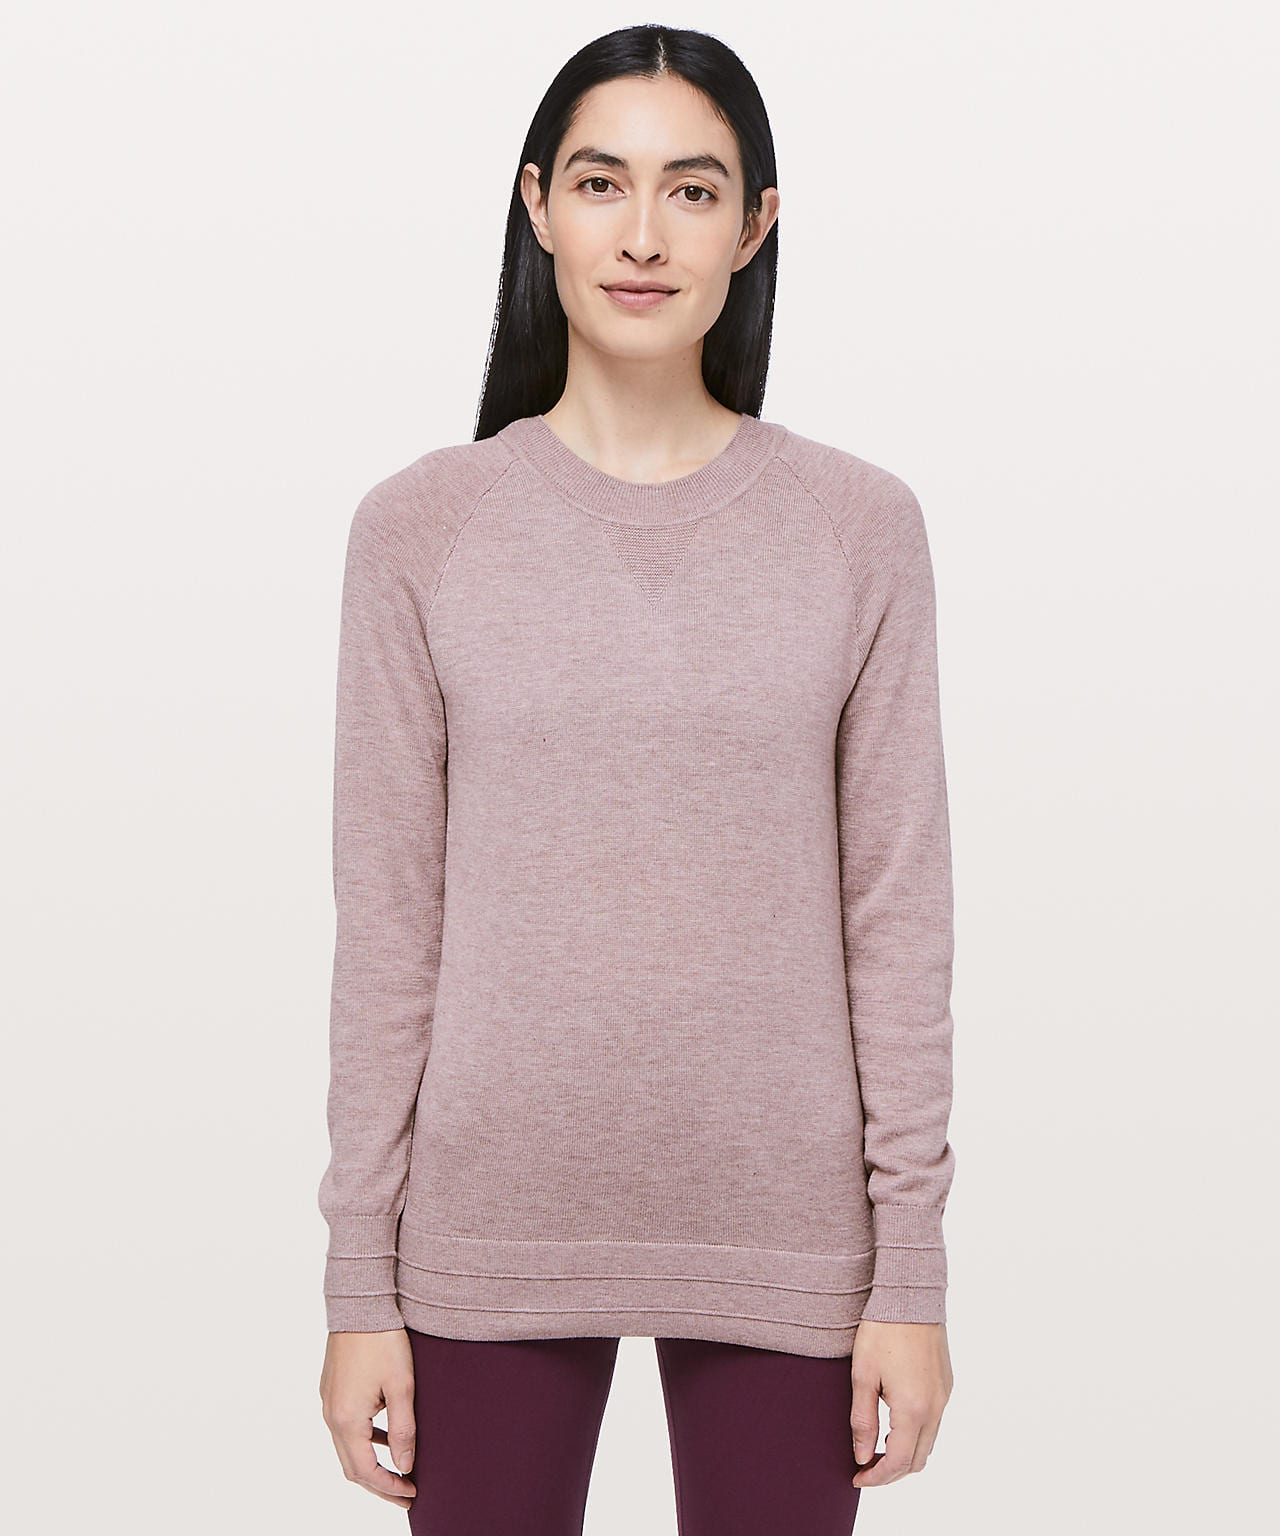 Apres Your Way Sweater